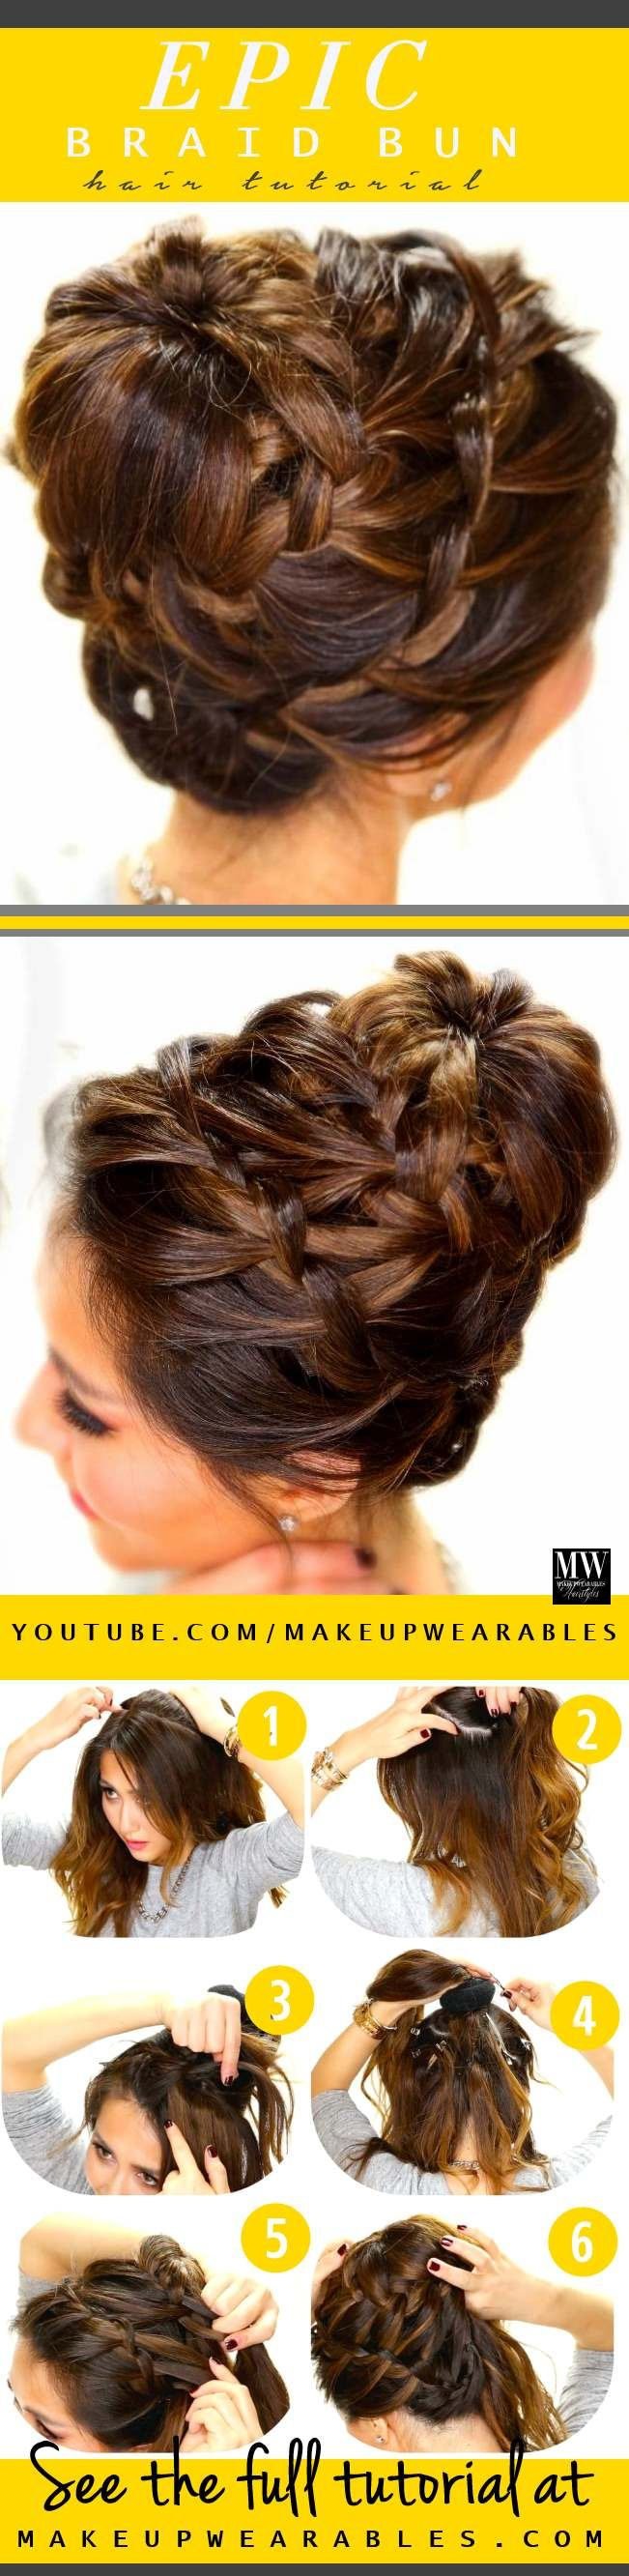 Epic braid bun #style | #Pretty Updo #Hairstyles for Holiday